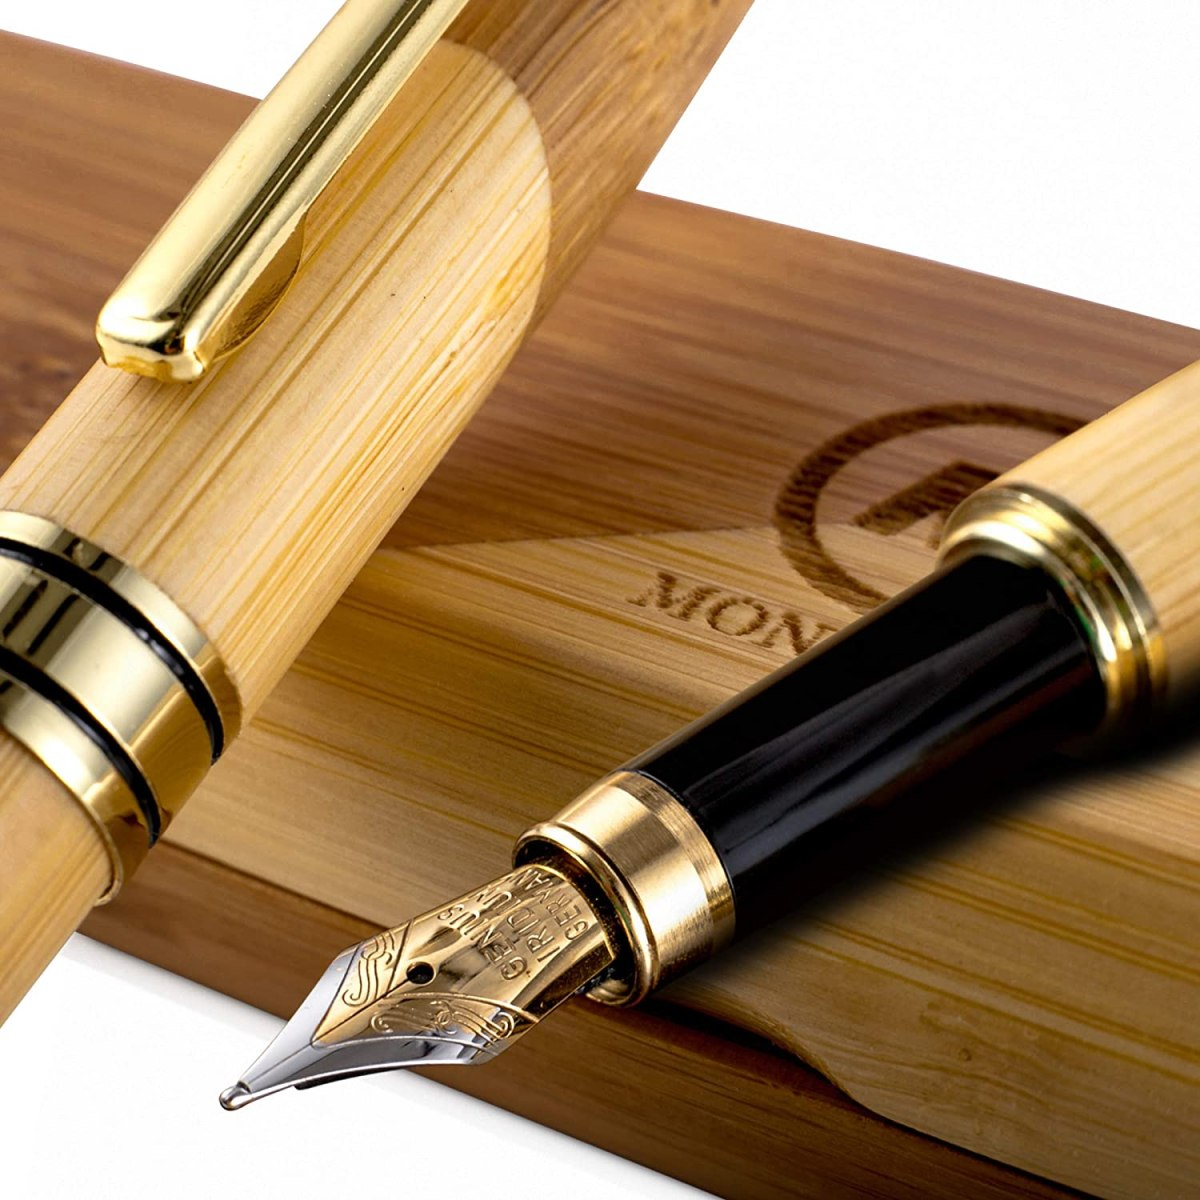 Top 15 Best Pens For Gift (Gift Pen Review For 2021) 37